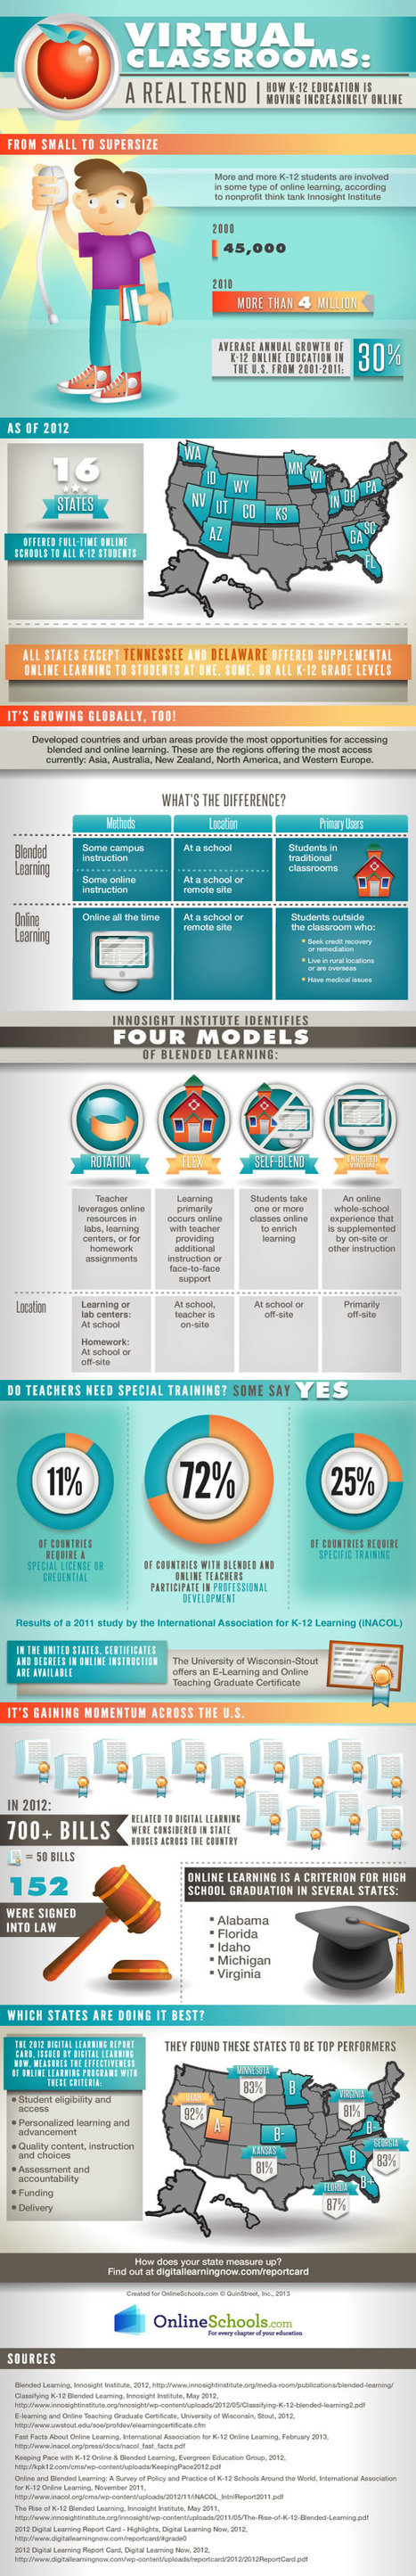 The Teacher's Quick Guide To Blended Learning [Infographic] | Aprender a distancia | Scoop.it